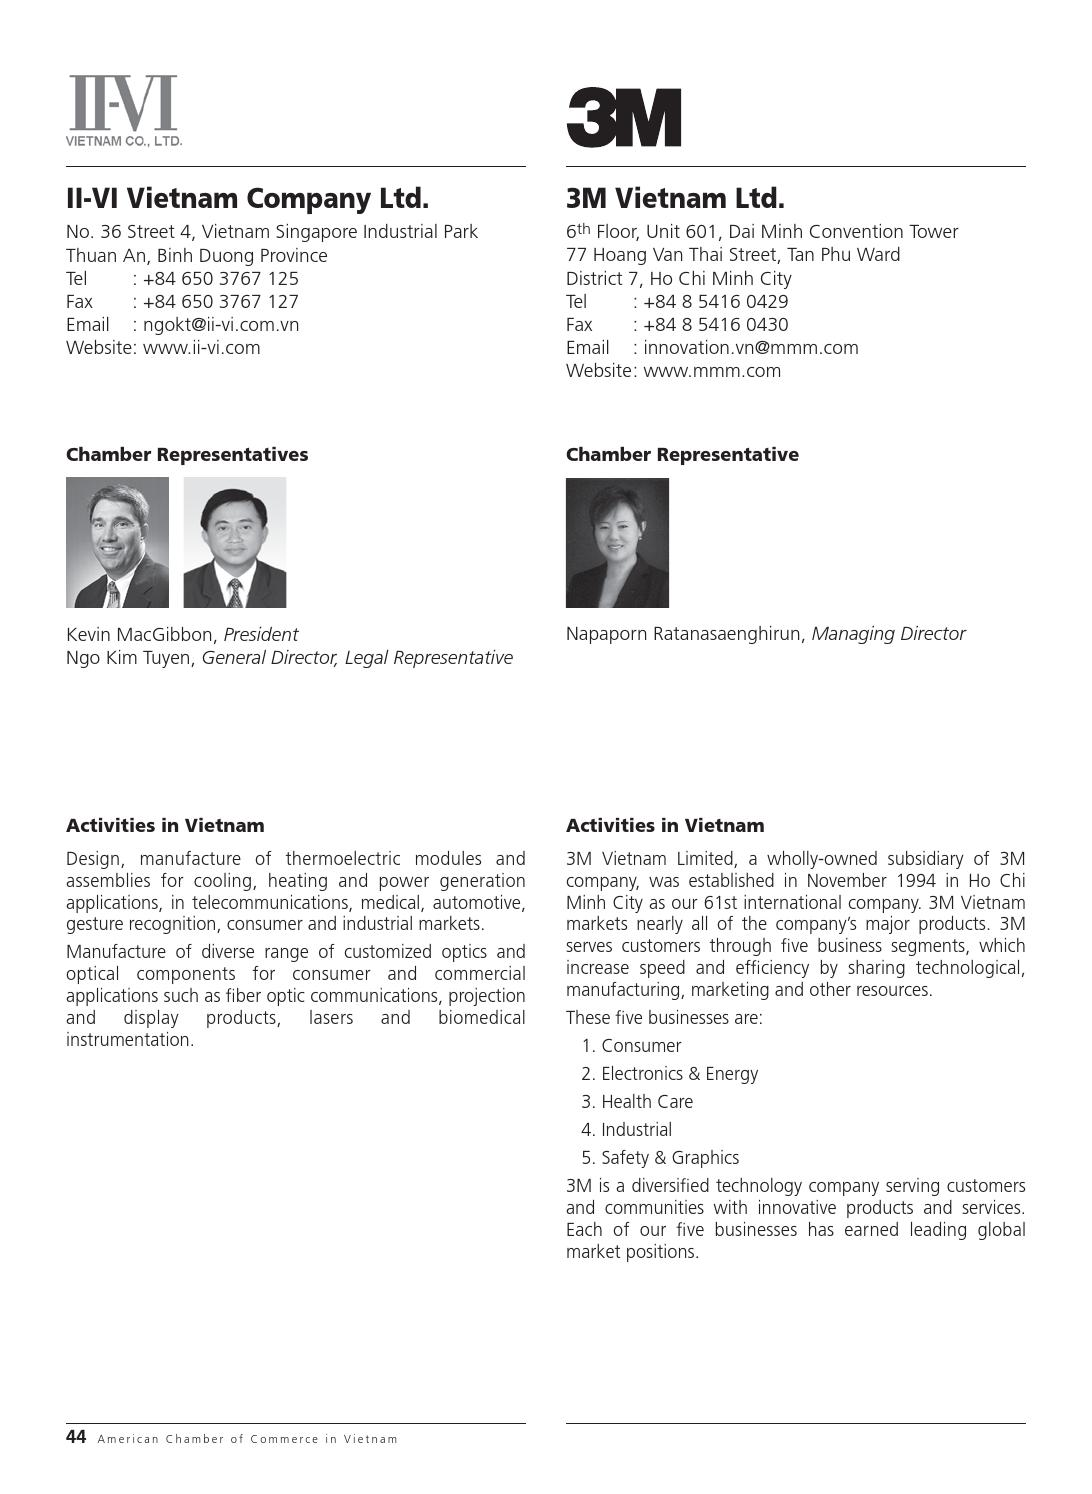 AmCham Membership Directory 2013 by Minh Le - issuu